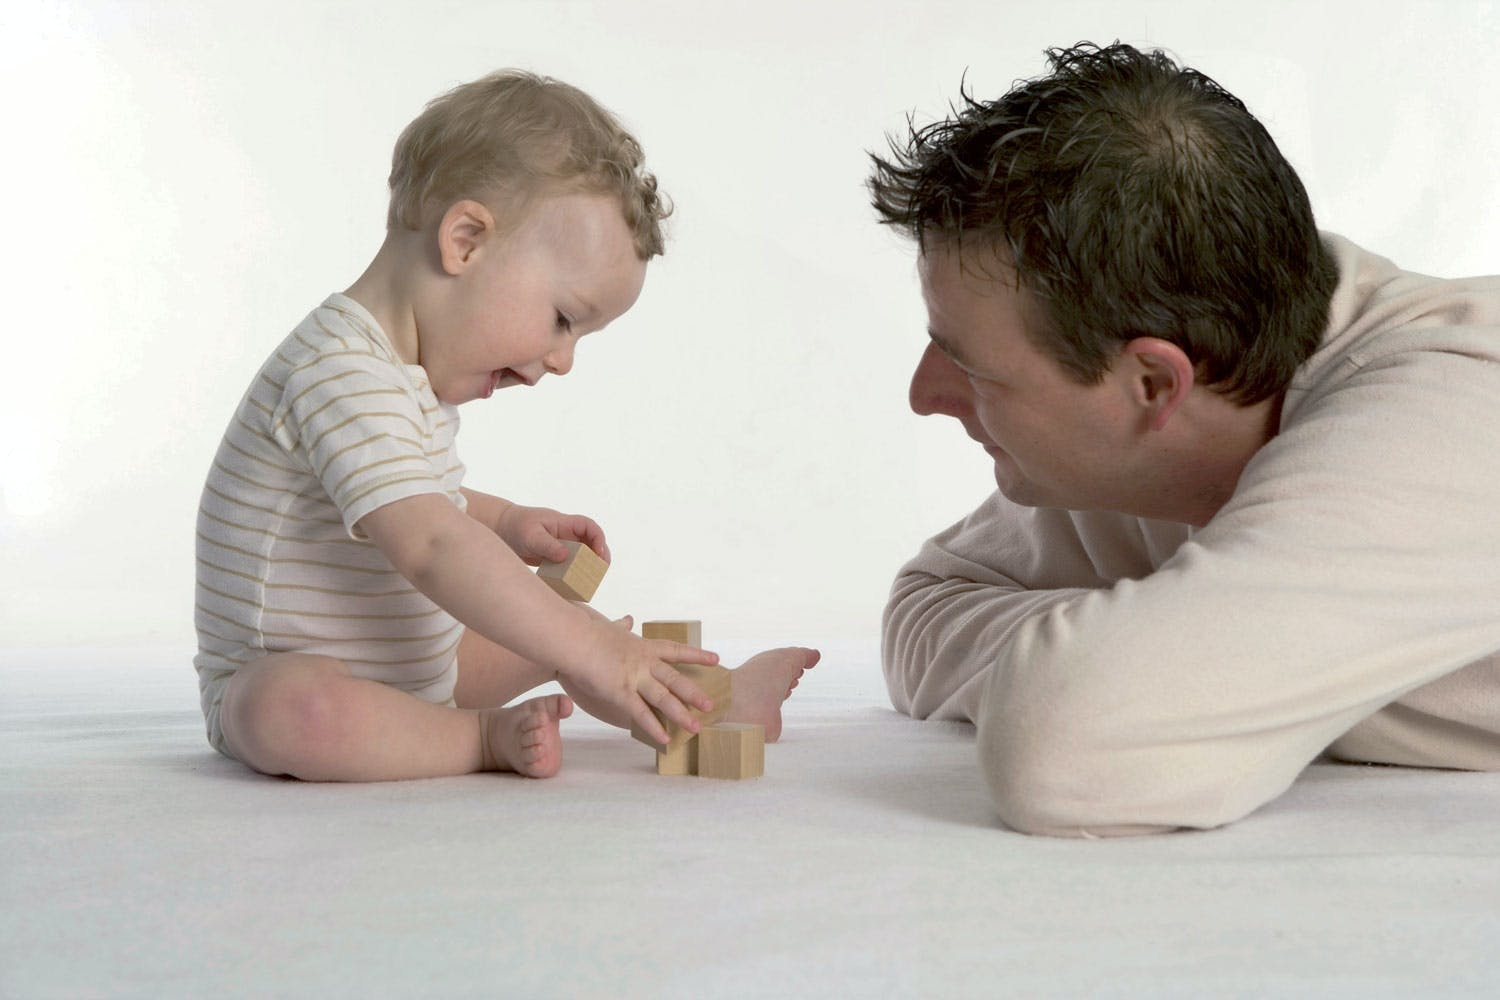 Father and child playing, Building blocks